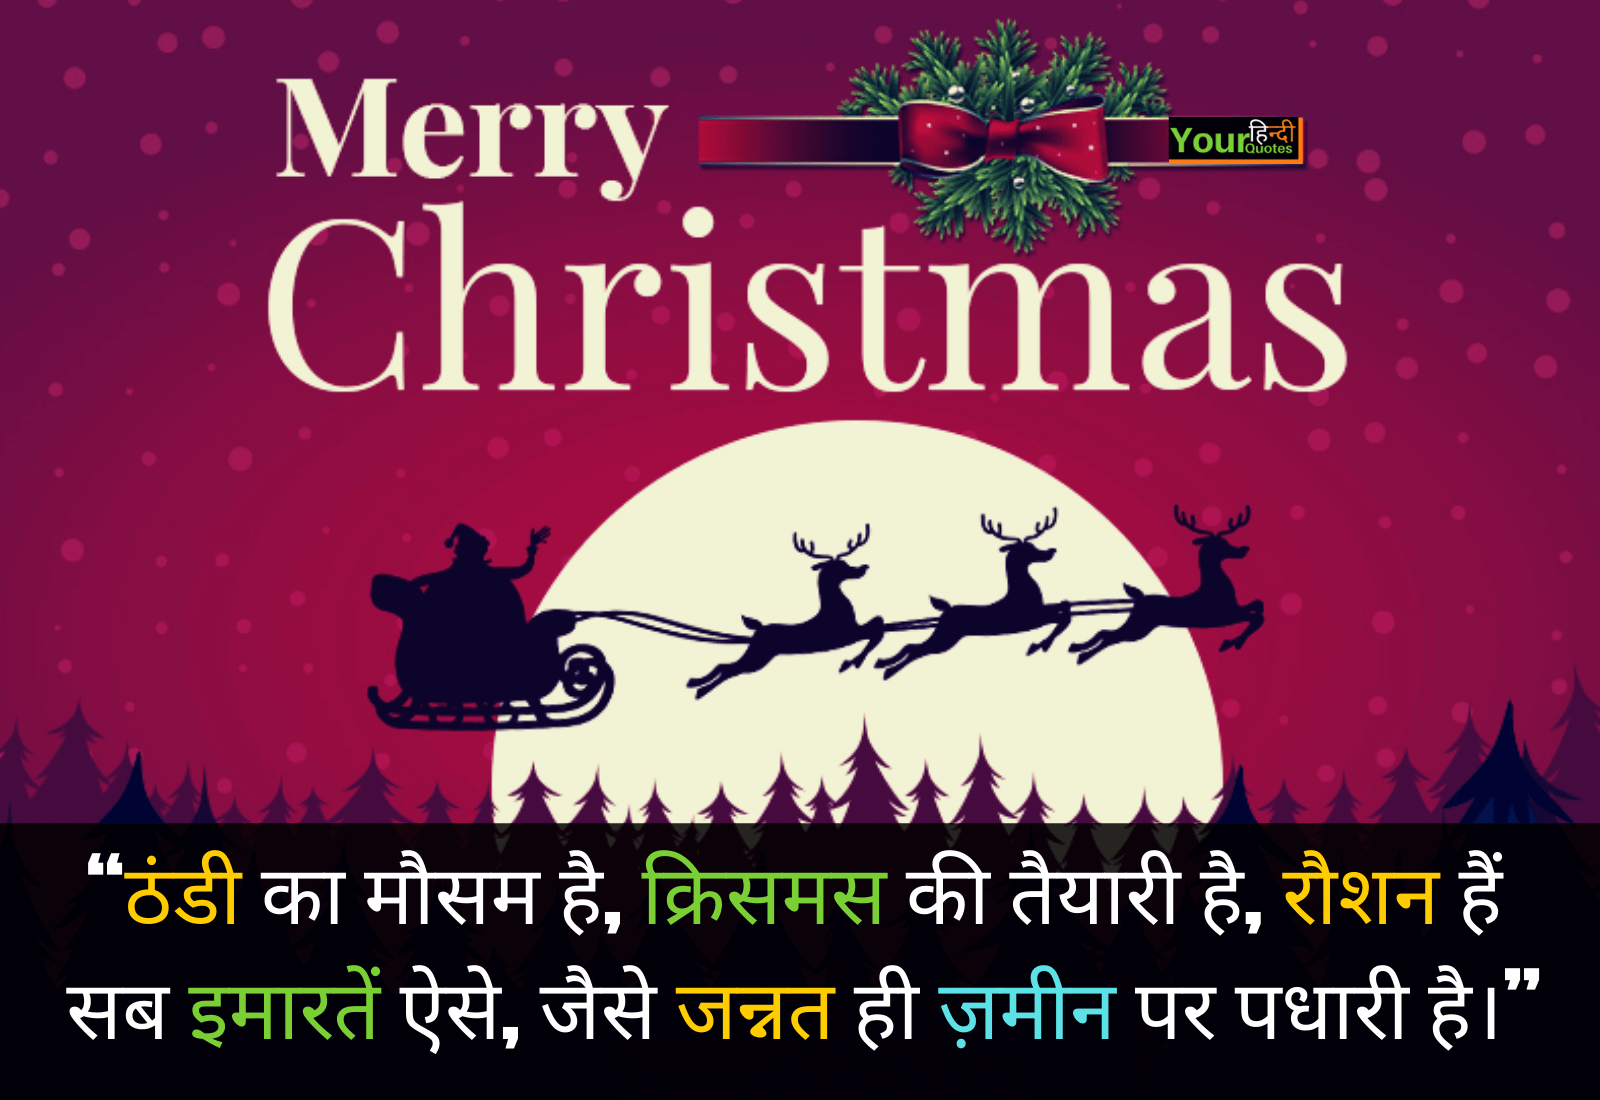 Merry Christmas Hindi Wishes images